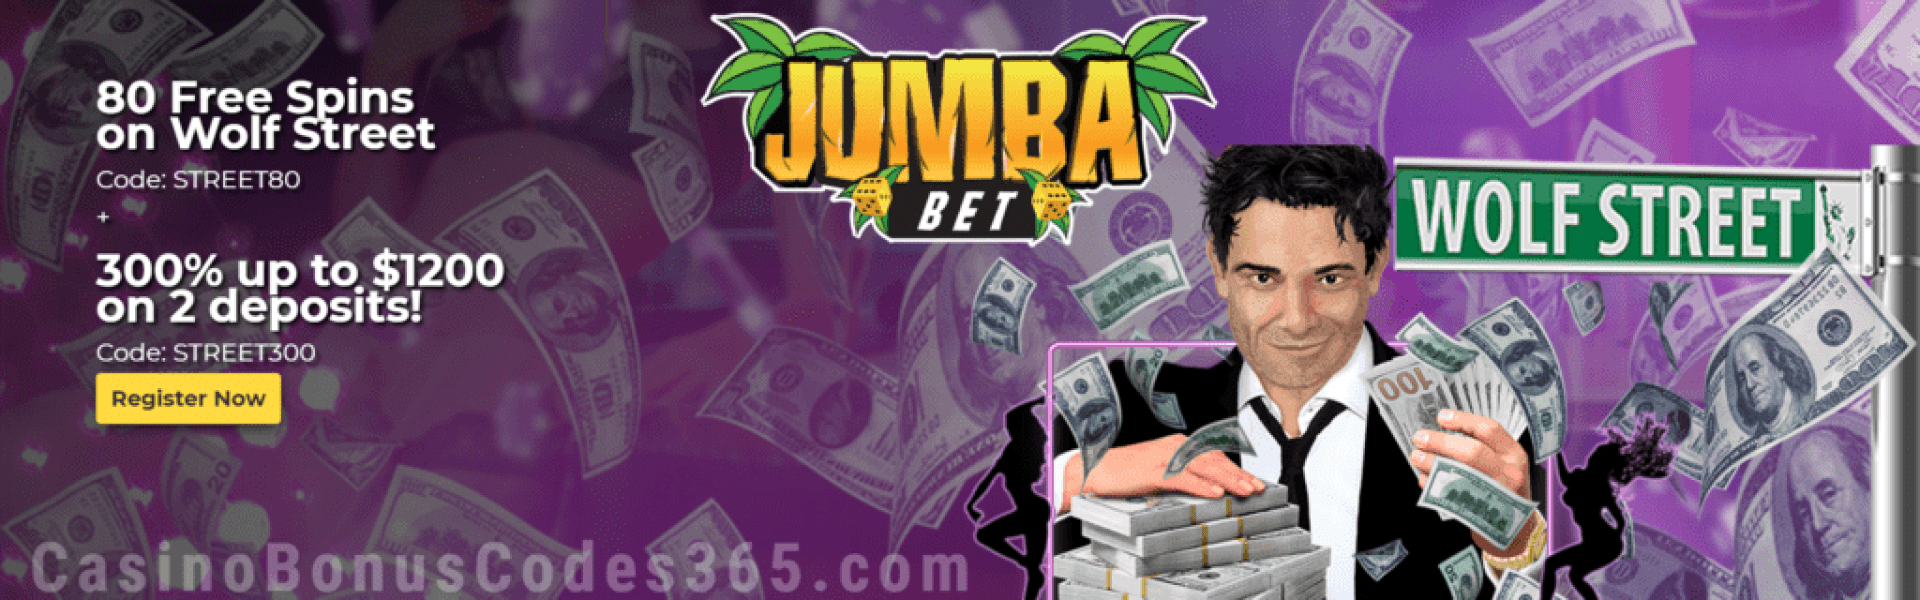 Jumba Bet 80 FREE Spins on Saucify Wolf Street plus 300% Match Exclusive Deal